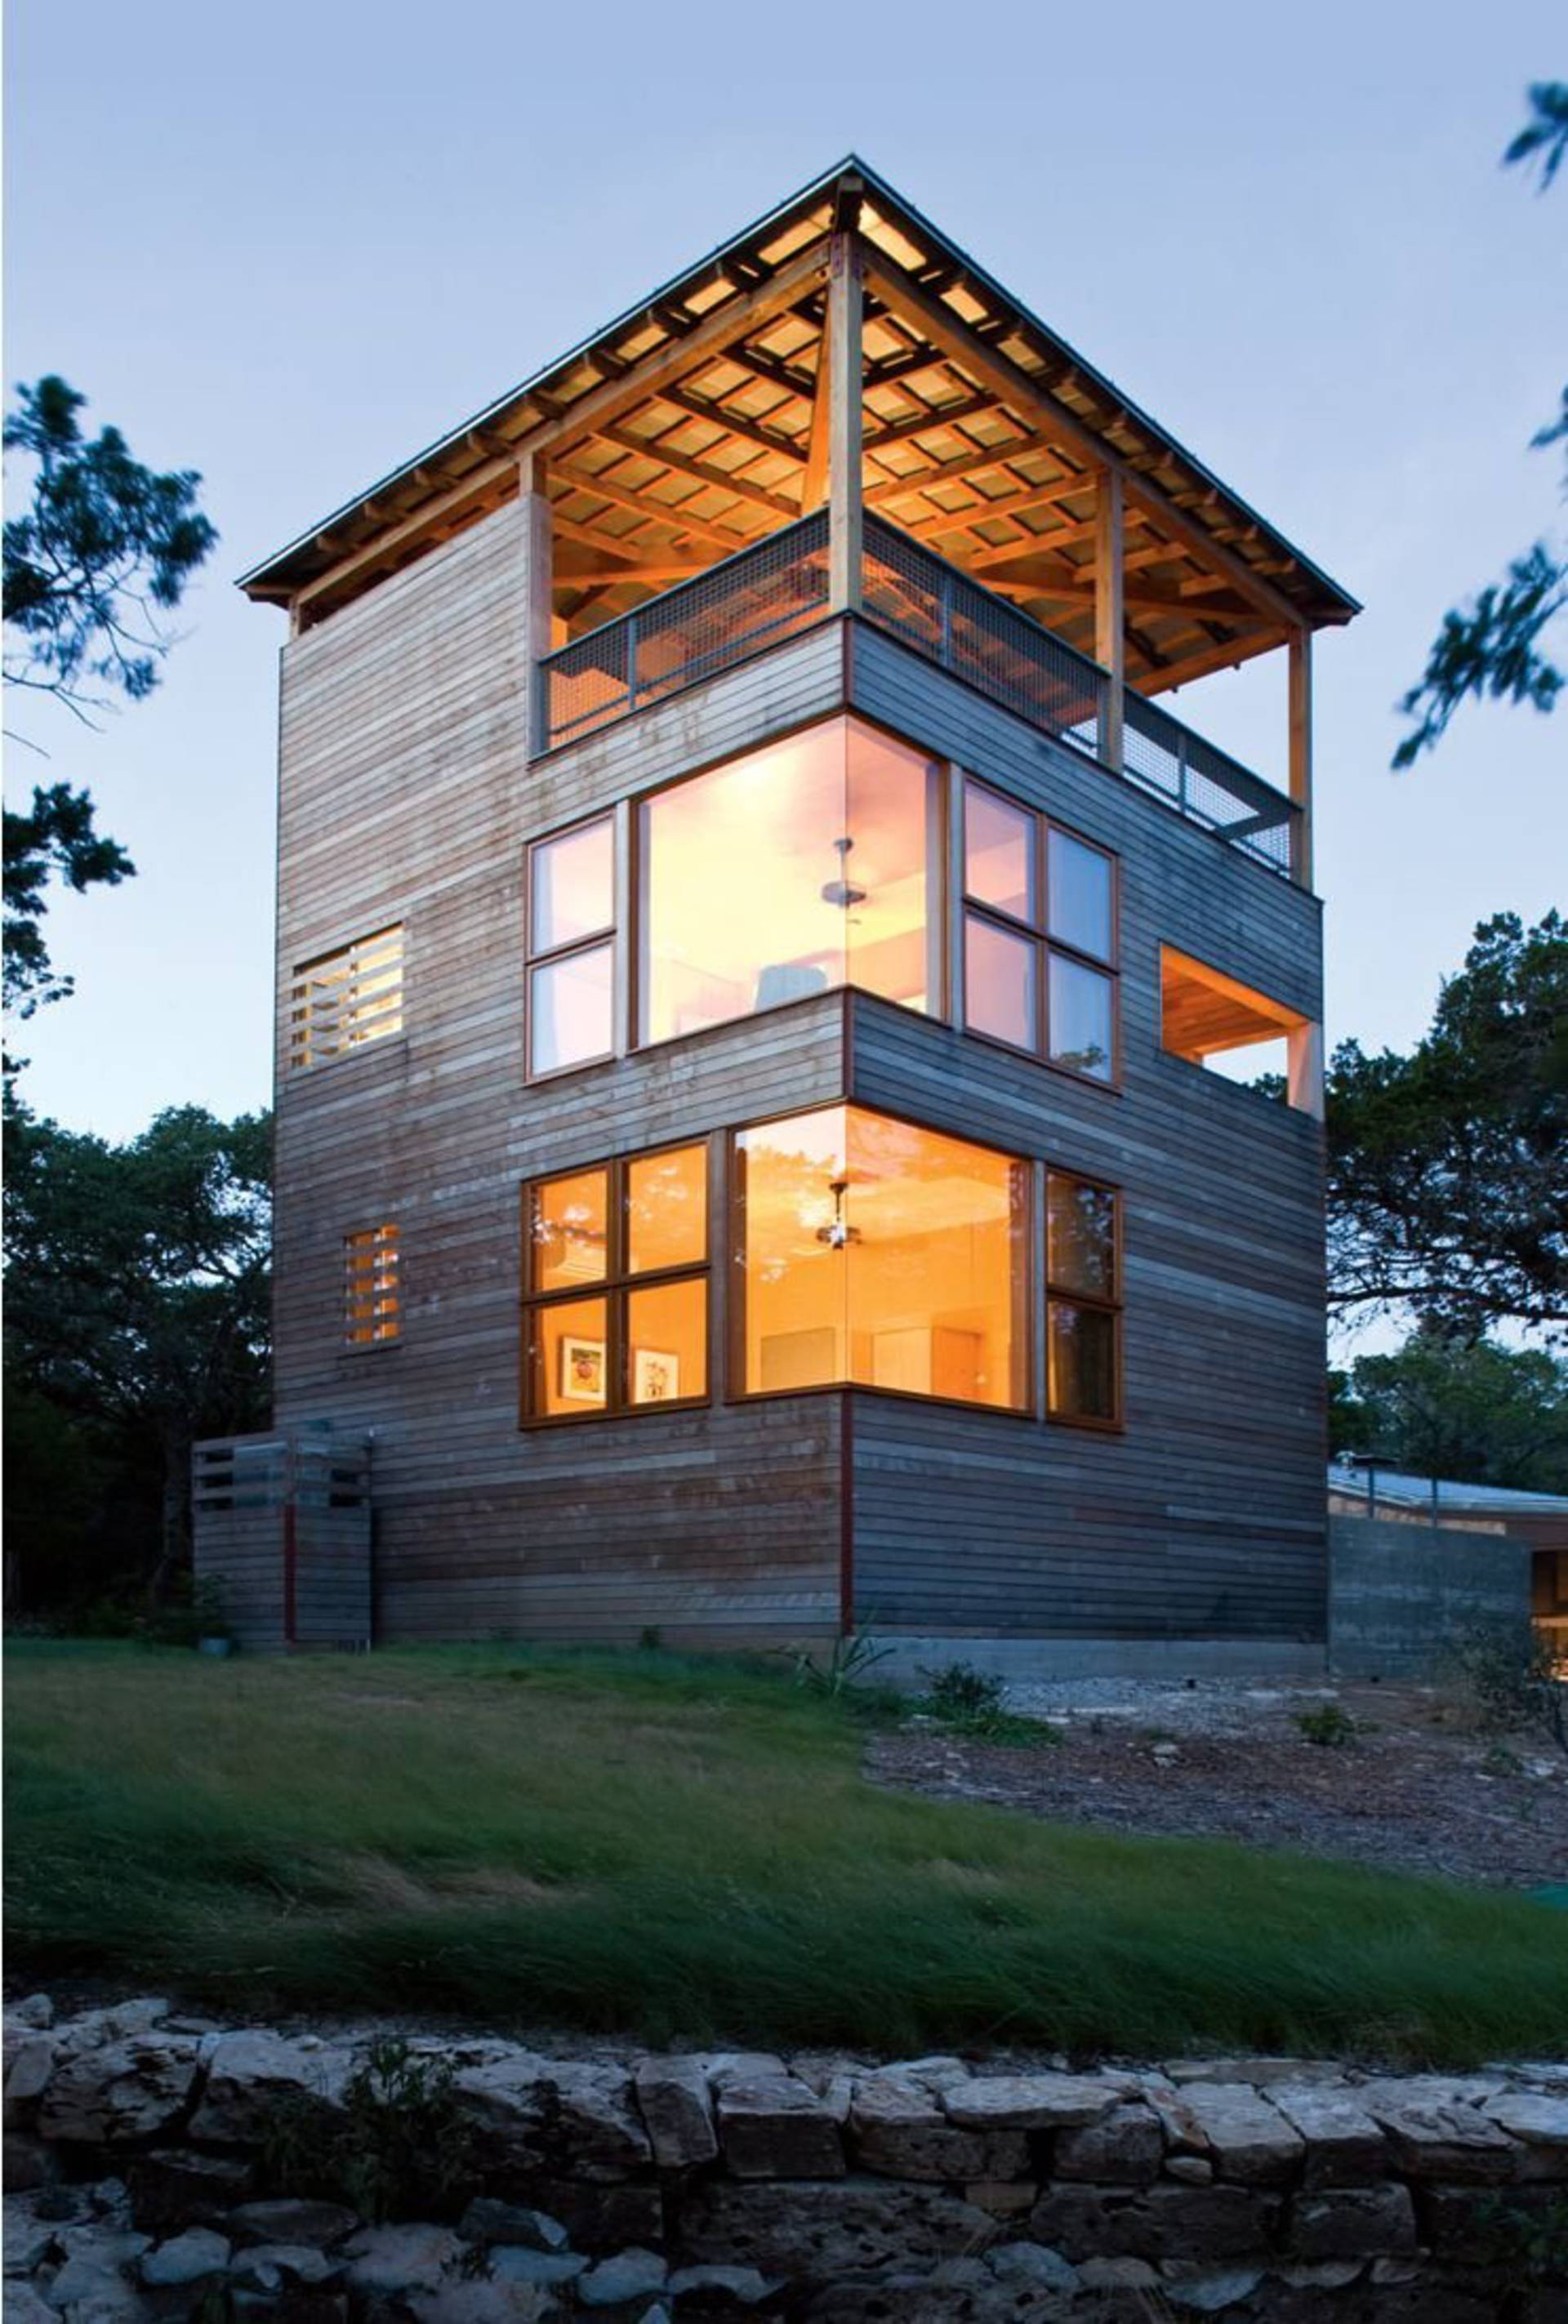 Tower House by Andersson Wise Architects - Home Reviews